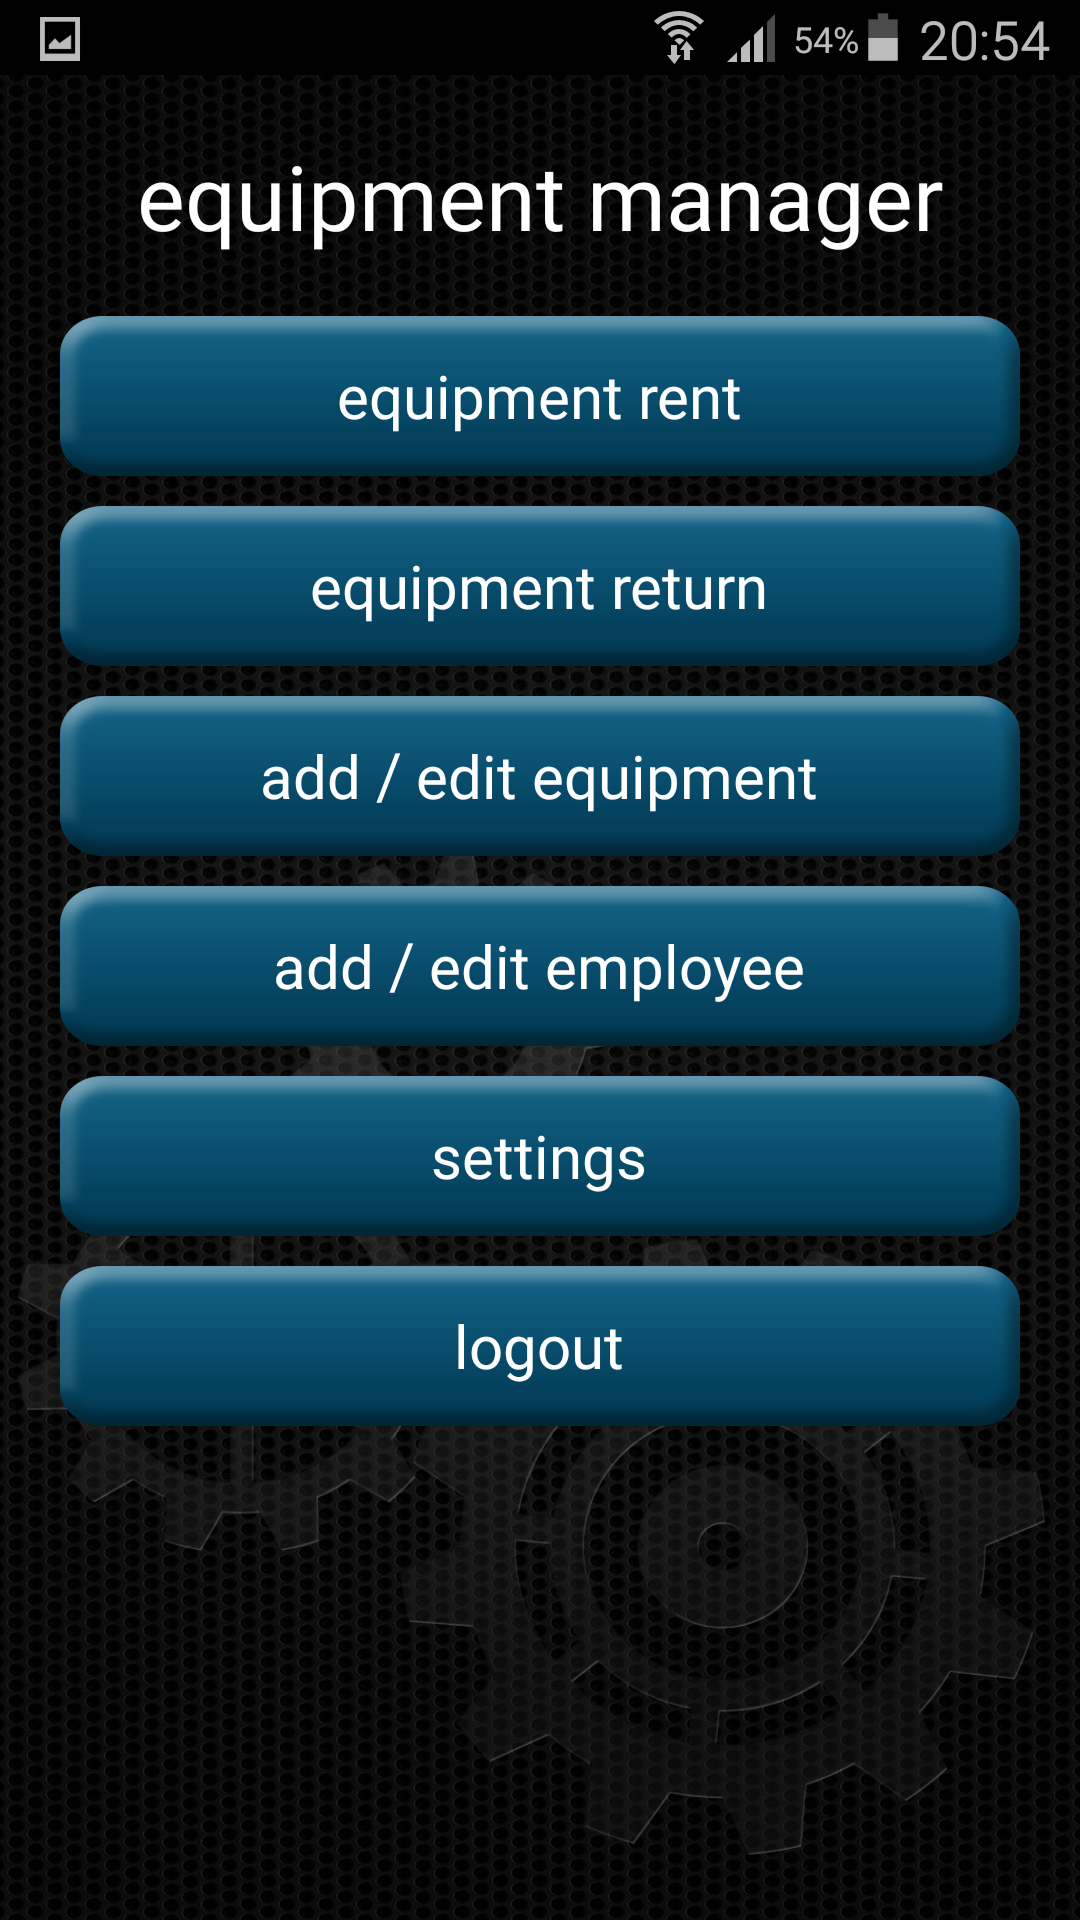 ginstr_app_equipmentManager_EN_2